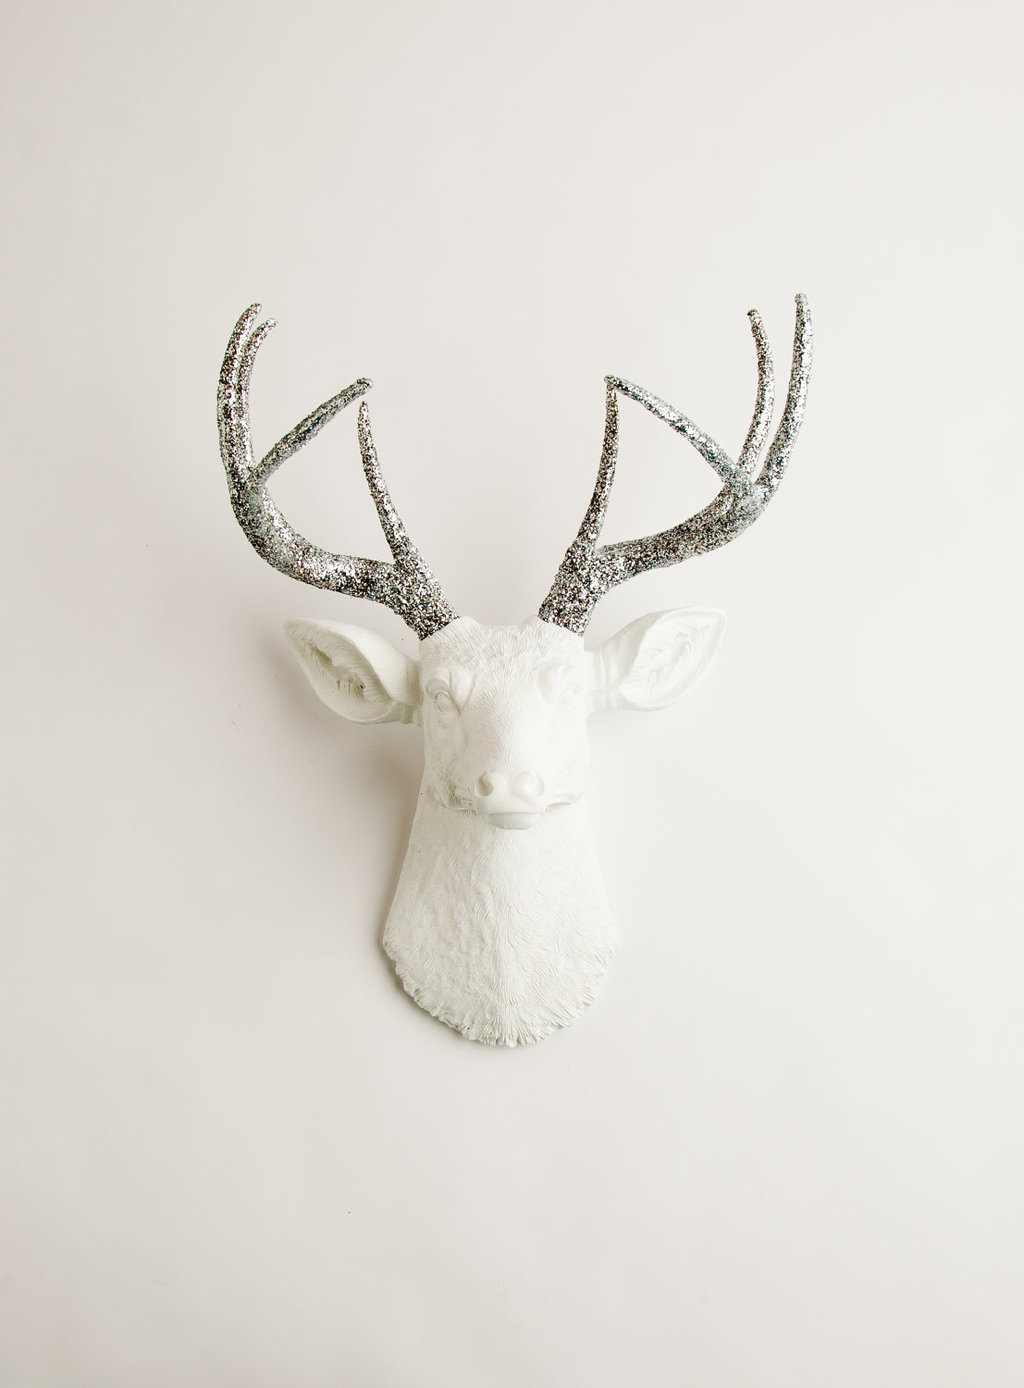 Rustic-wedding-decor-white-and-silver-antlers.full